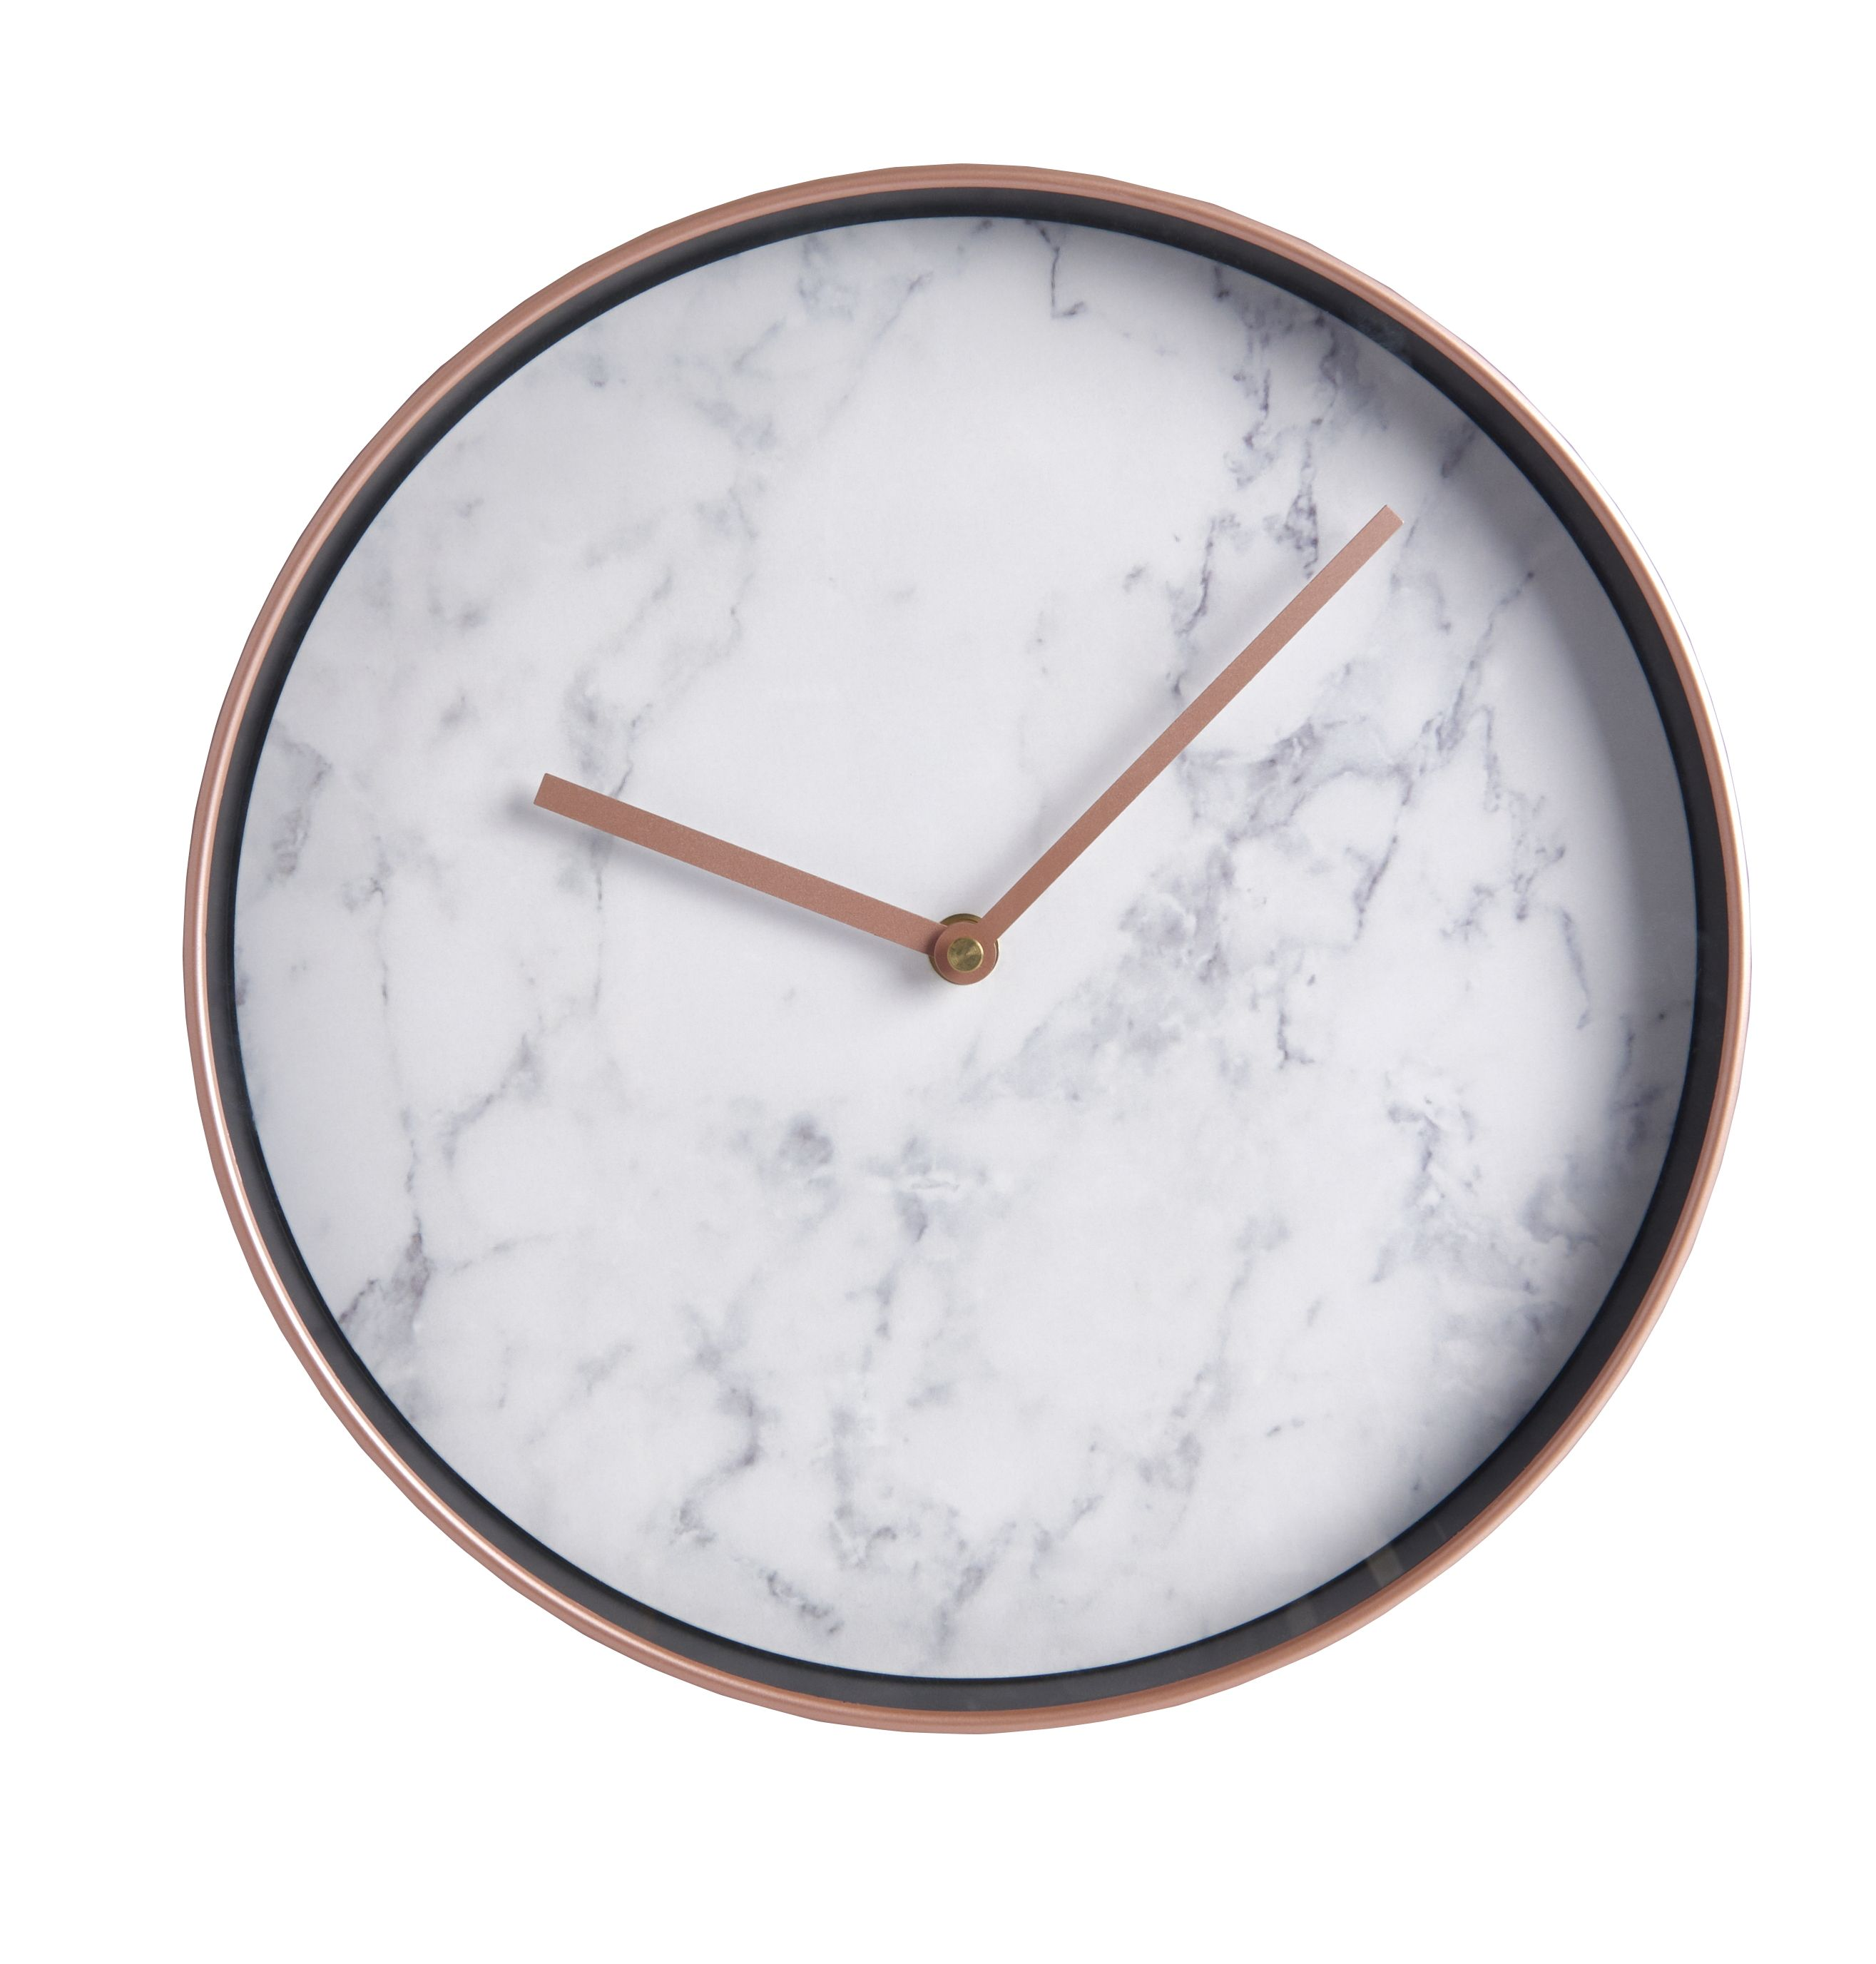 Wall Clock Design Best Stylish Wall Clocks To Buy Modern Copper Oversized Clocks